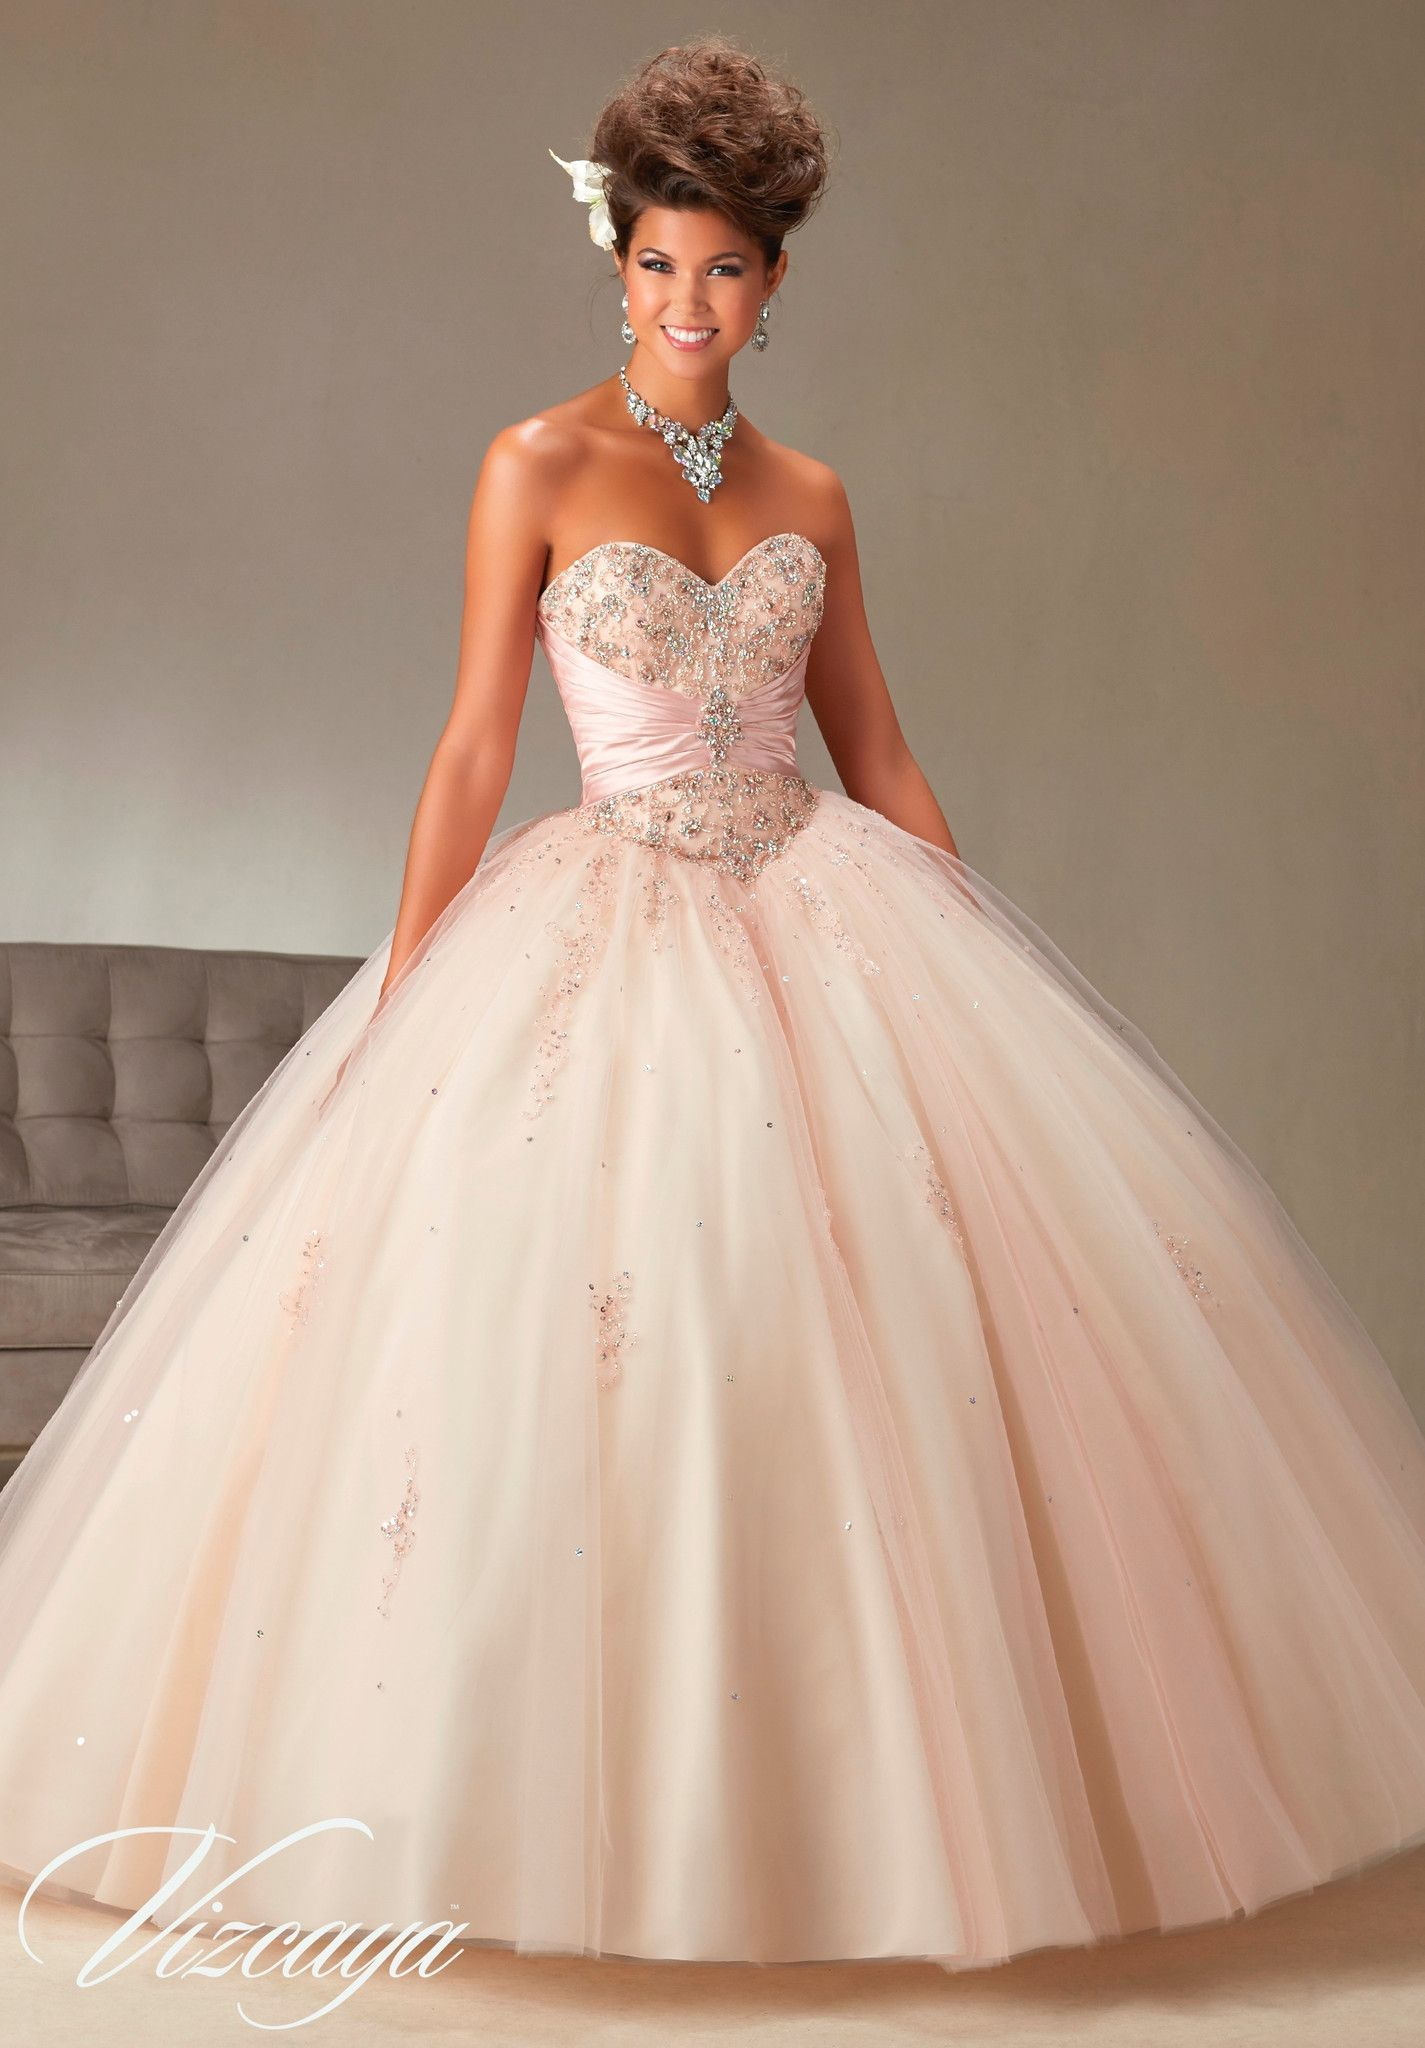 bc86958394 Mori Lee Vizcaya Quinceanera Dress Style 89069 is made for girls who want  to look like a beautiful Princess on her Sweet 15. Made out of two-tone  satin and ...